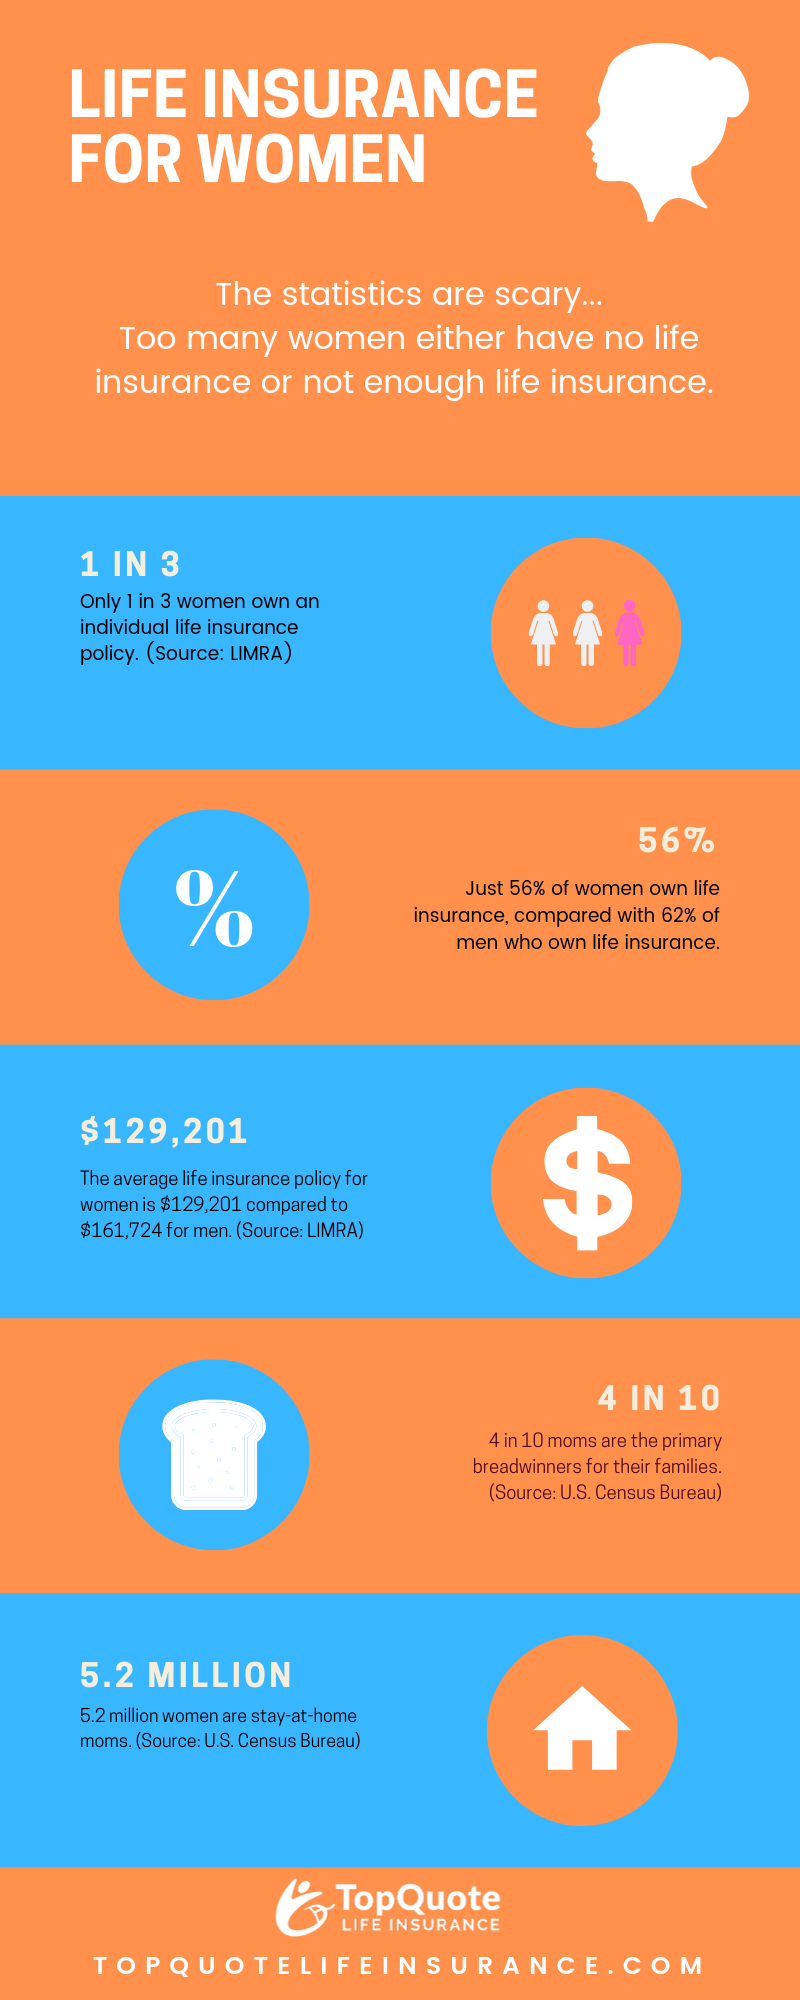 Life Insurance for women infographic